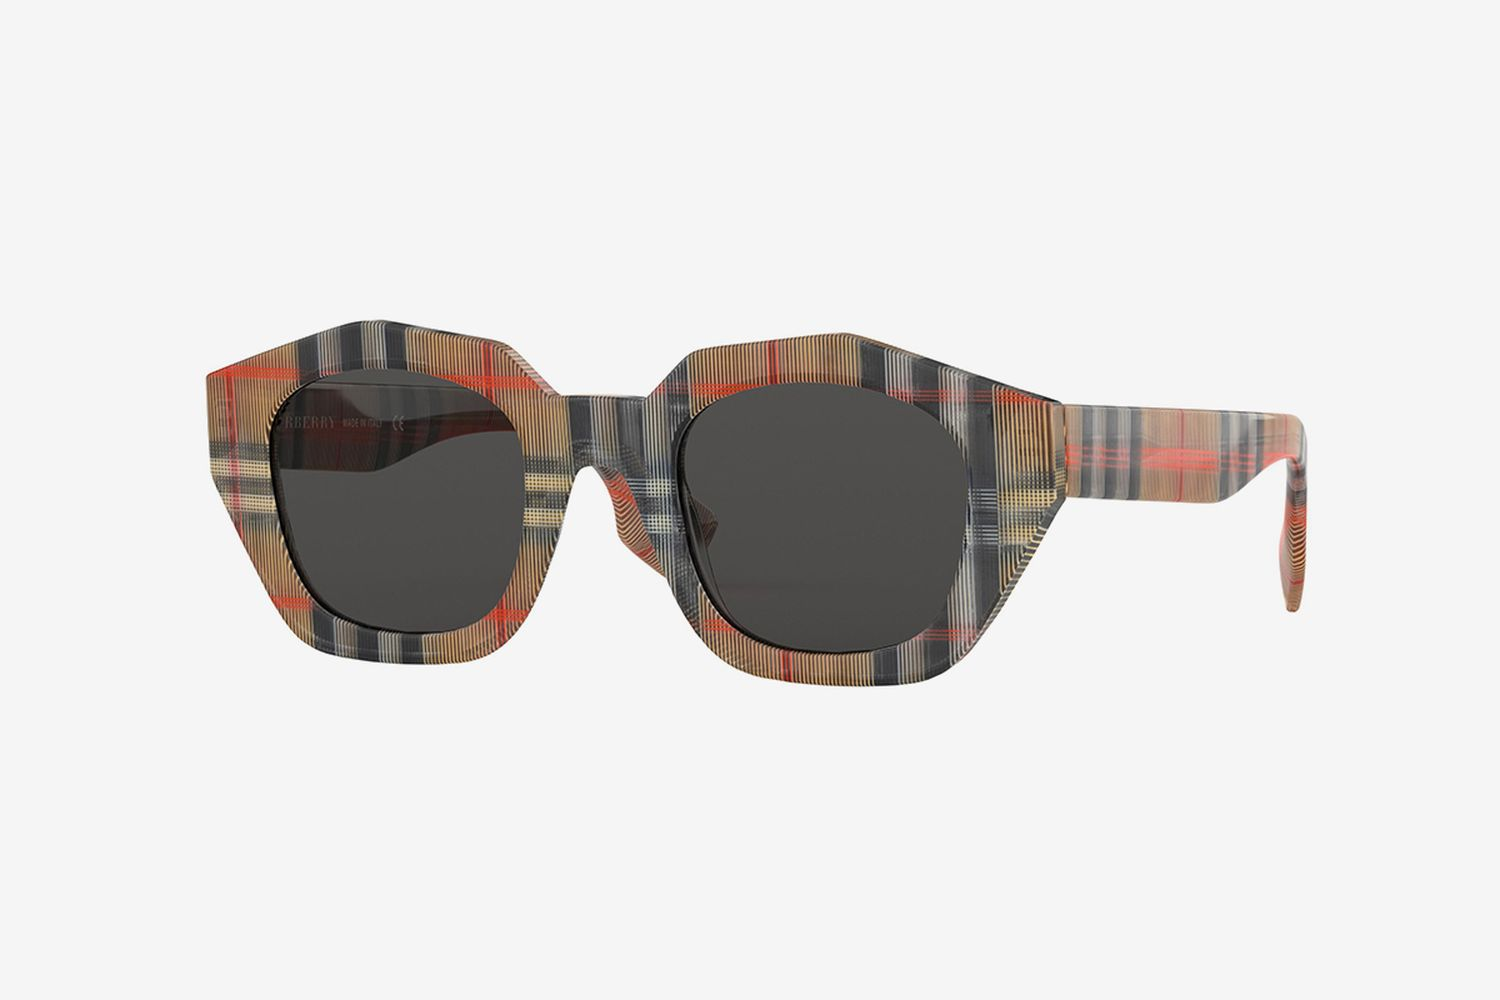 Geometric Vintage Sunglasses